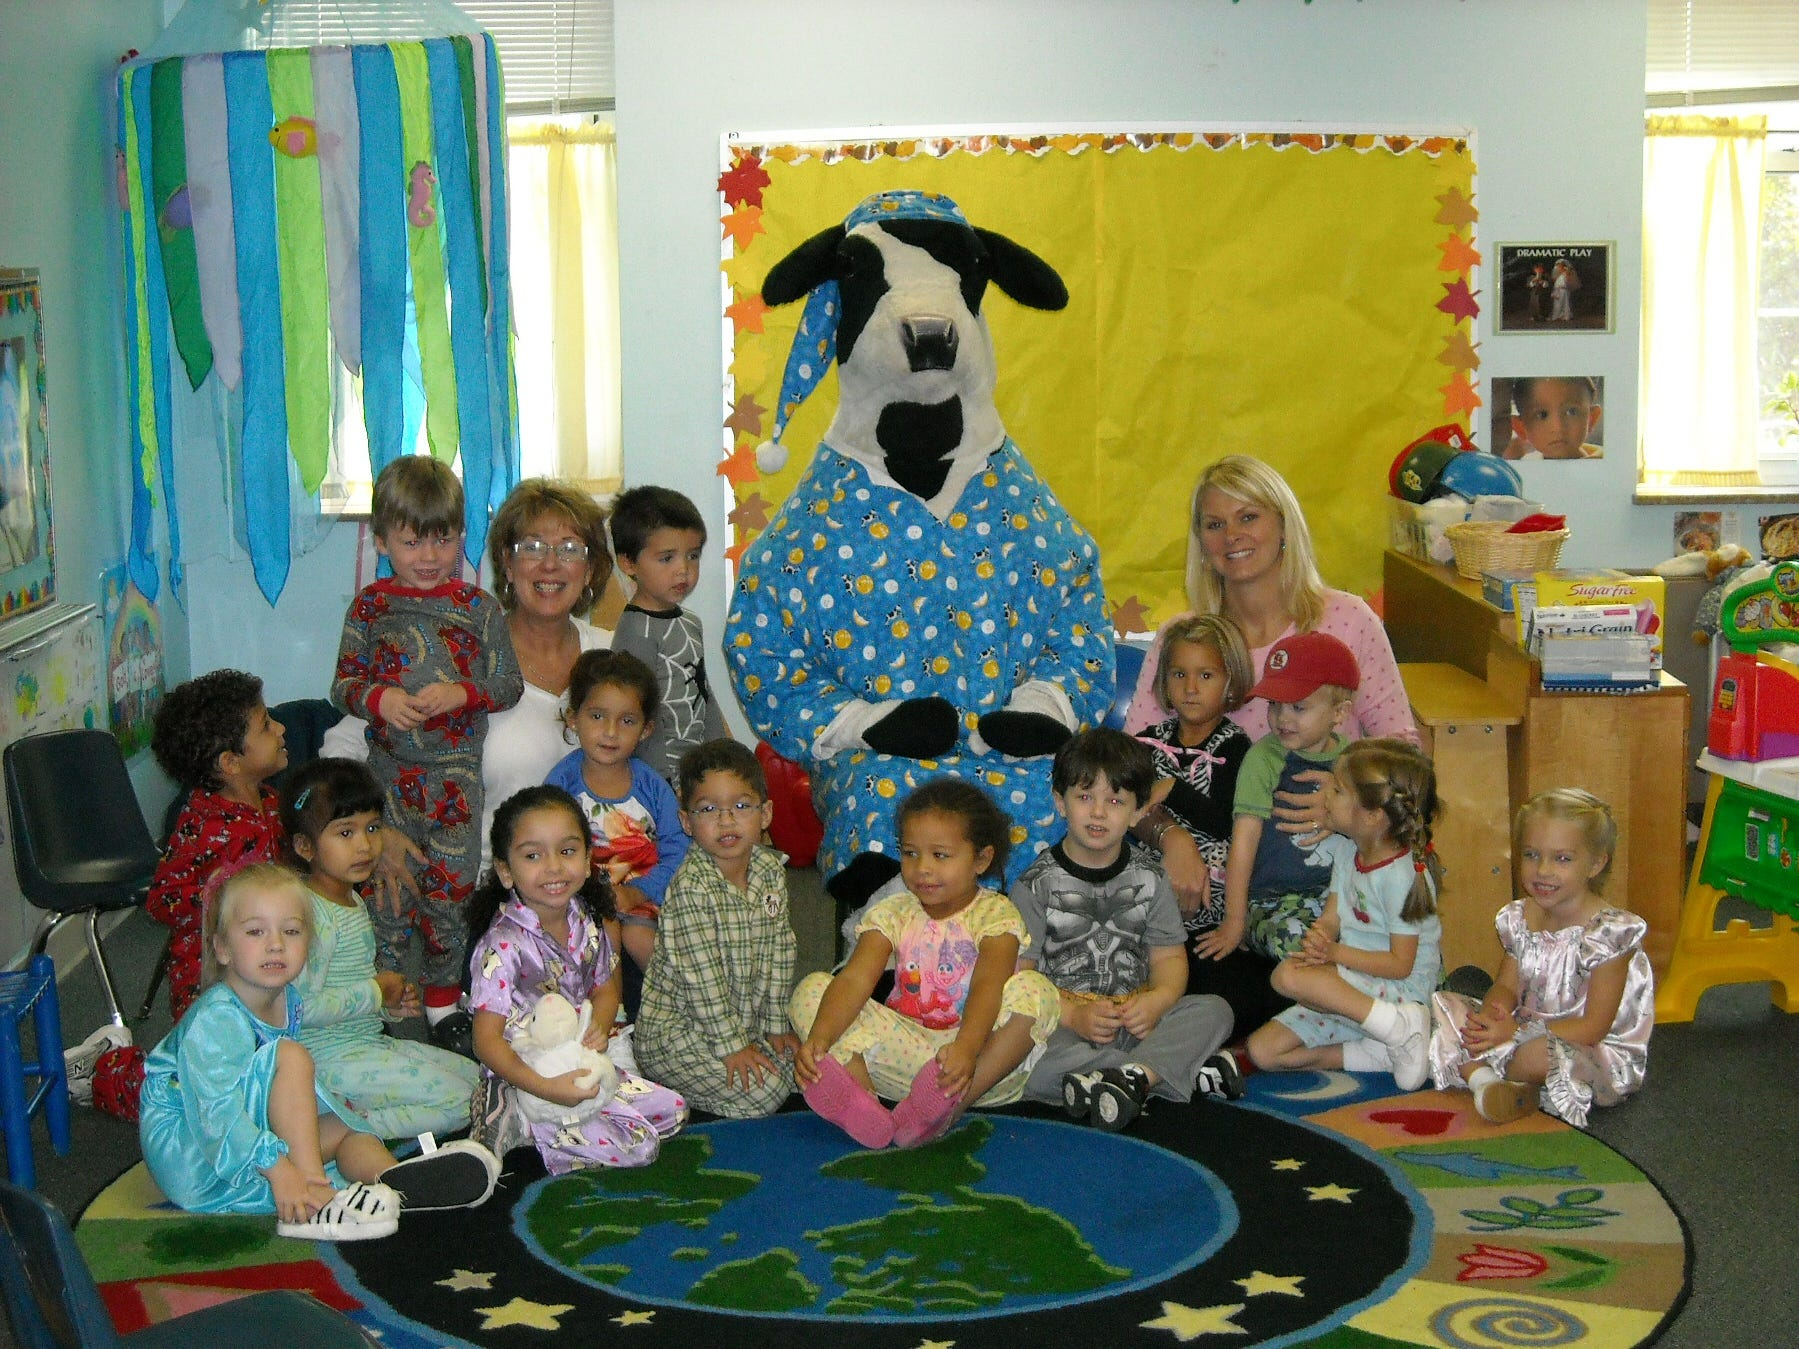 During a week-long breakfast promotion at Eddie Halliday's Chick-Fil-A, the breakfast cow decided to surprise the preschoolers at Central Baptist Church of Bearden on pajama day. Pictured in no particular order are teachers Robin Triplett and Jamie Holden with students Natalie Olden, Emily Adams, Zach Sanborn, Griffin Cox, Melaine Pascoe, Willow Martinez, Walker Martinez, Cole Etheridge, Sydney Mwangi, Henry Bertucci, Olivia Kennedy, Jack Steed, Isa Young and McClain Riggins.